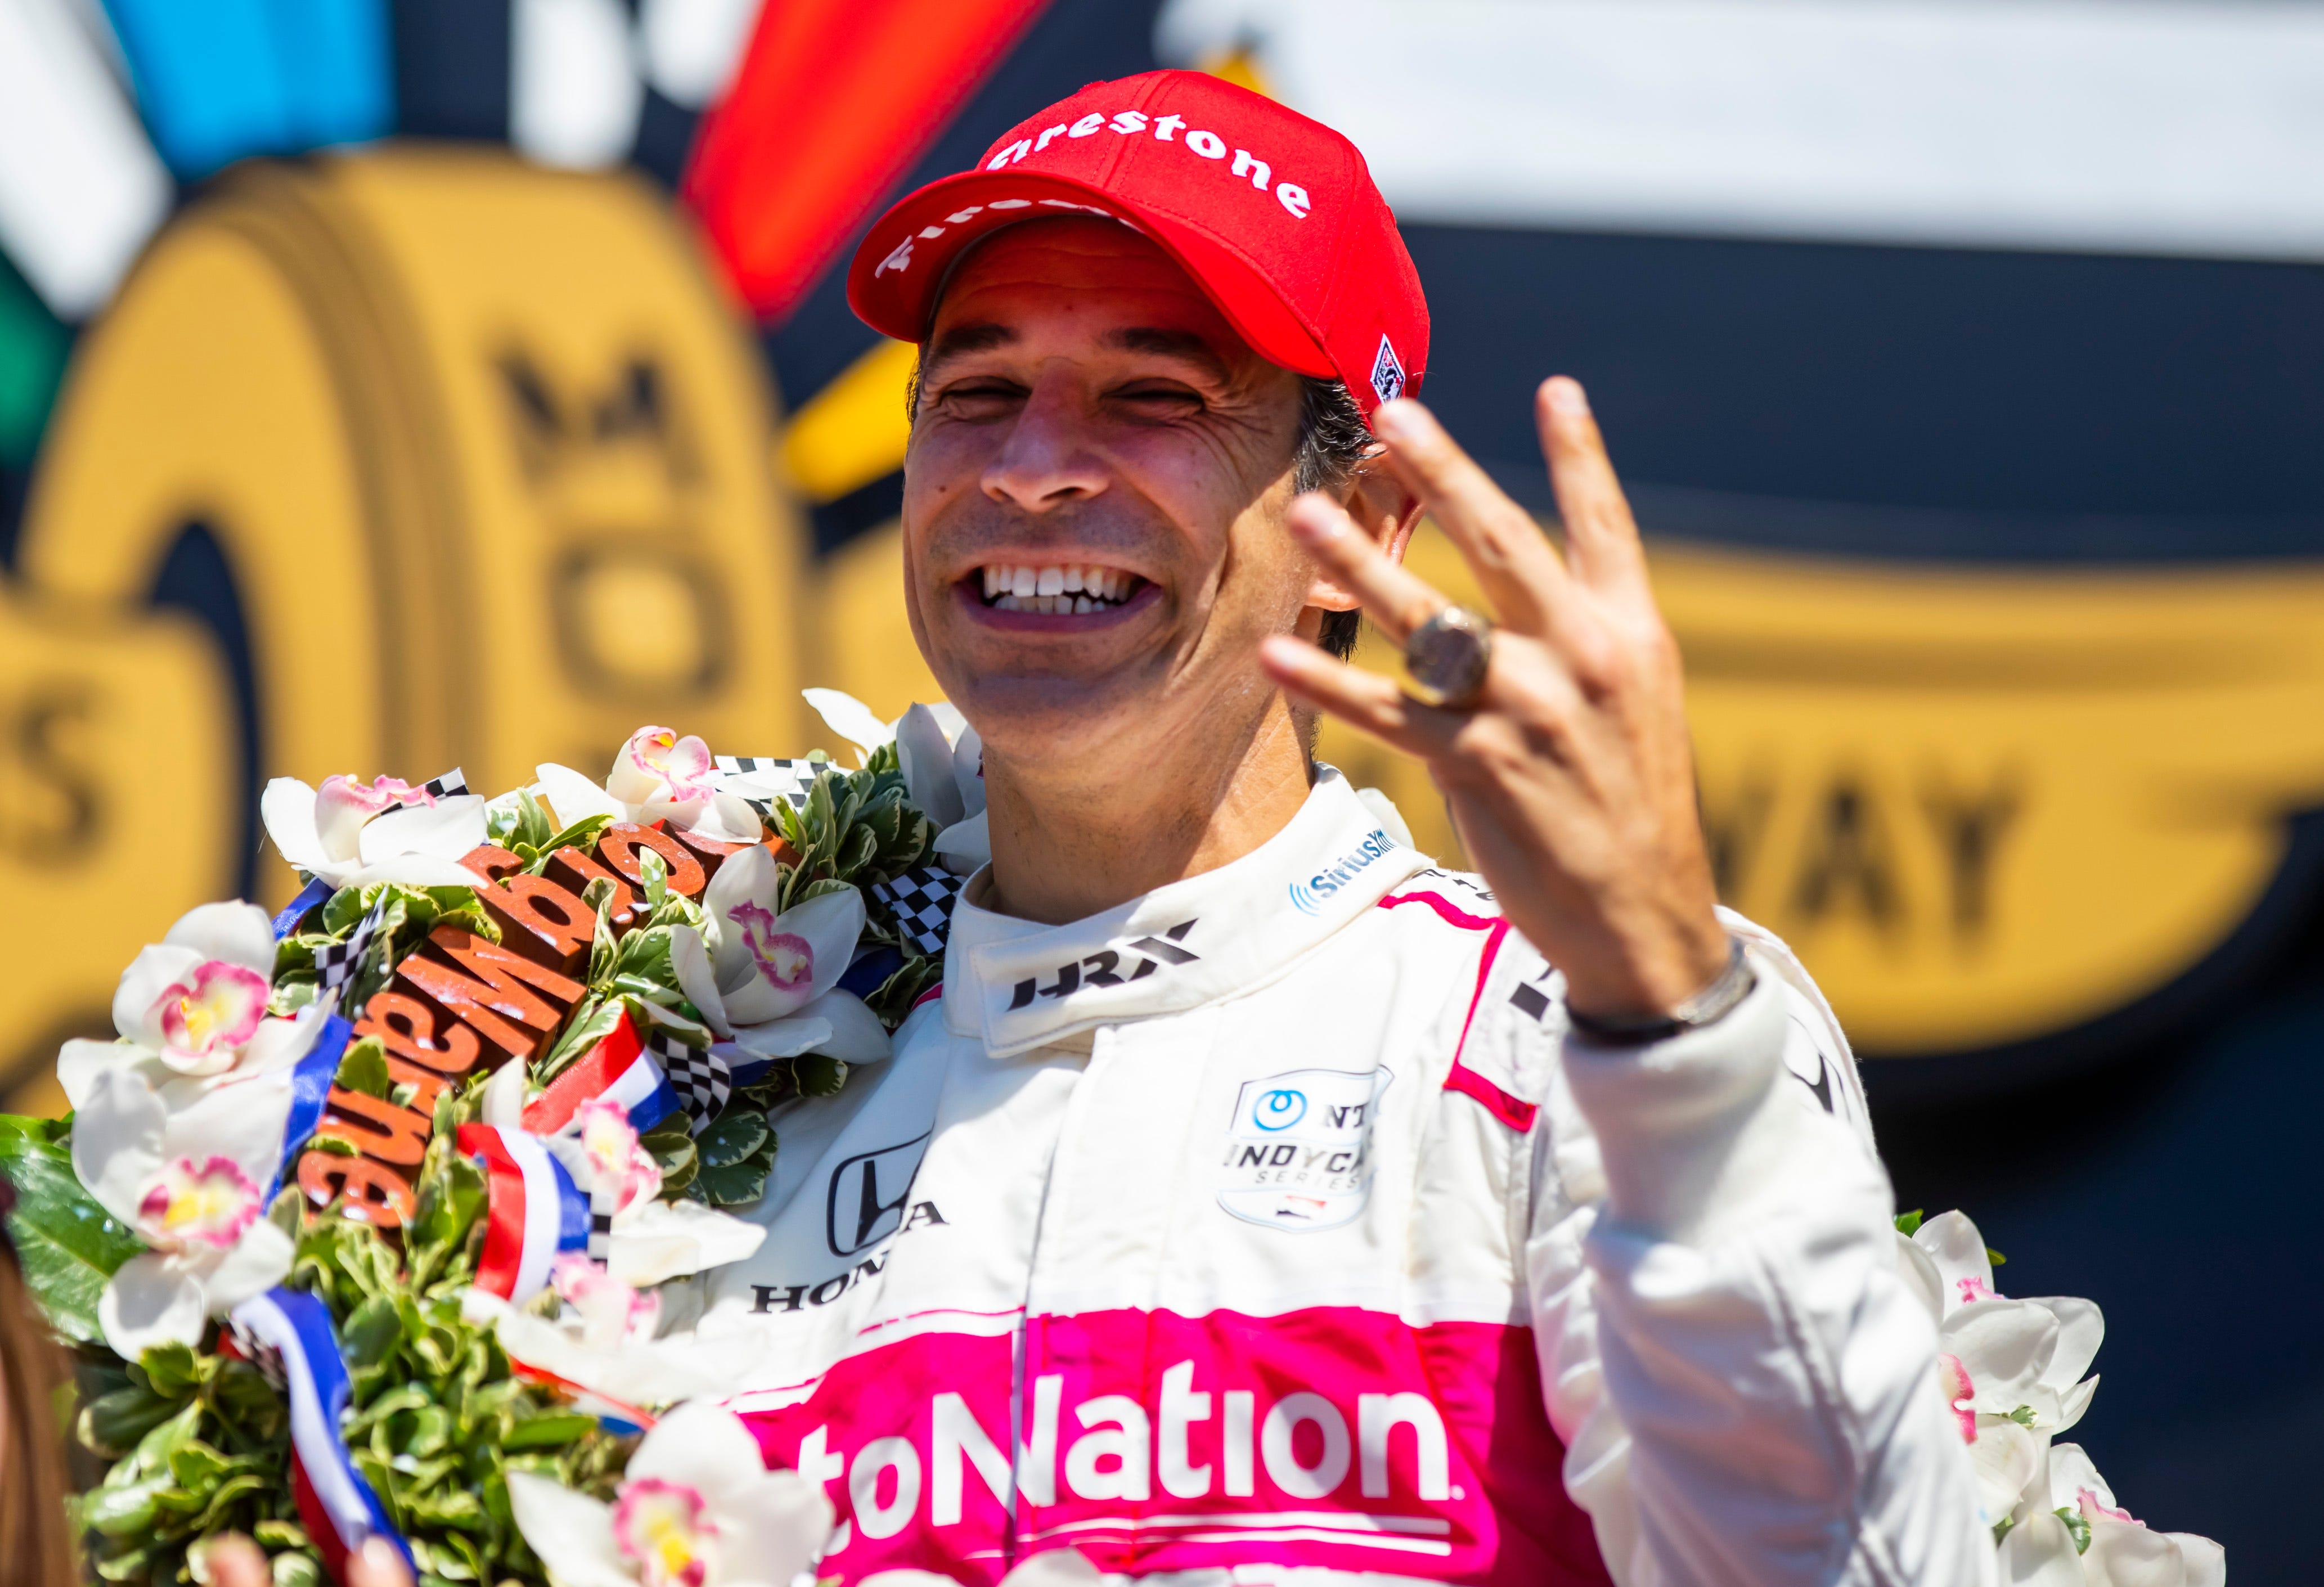 Helio Castroneves proves Indy 500 passion still burns bright